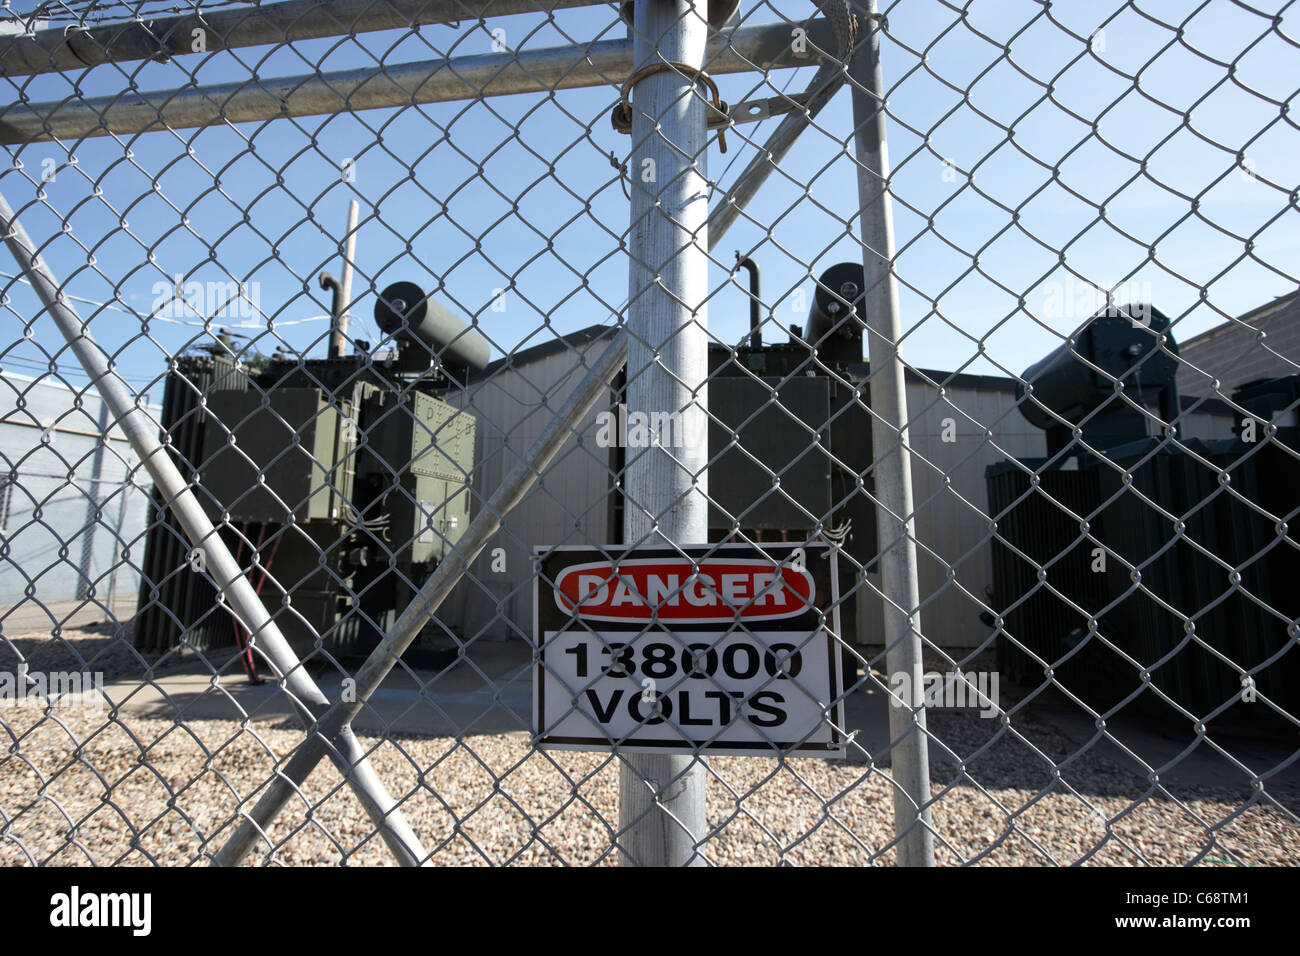 danger 138000 volts sign on town power transformer local electricity transmission Saskatoon Saskatchewan Canada - Stock Image